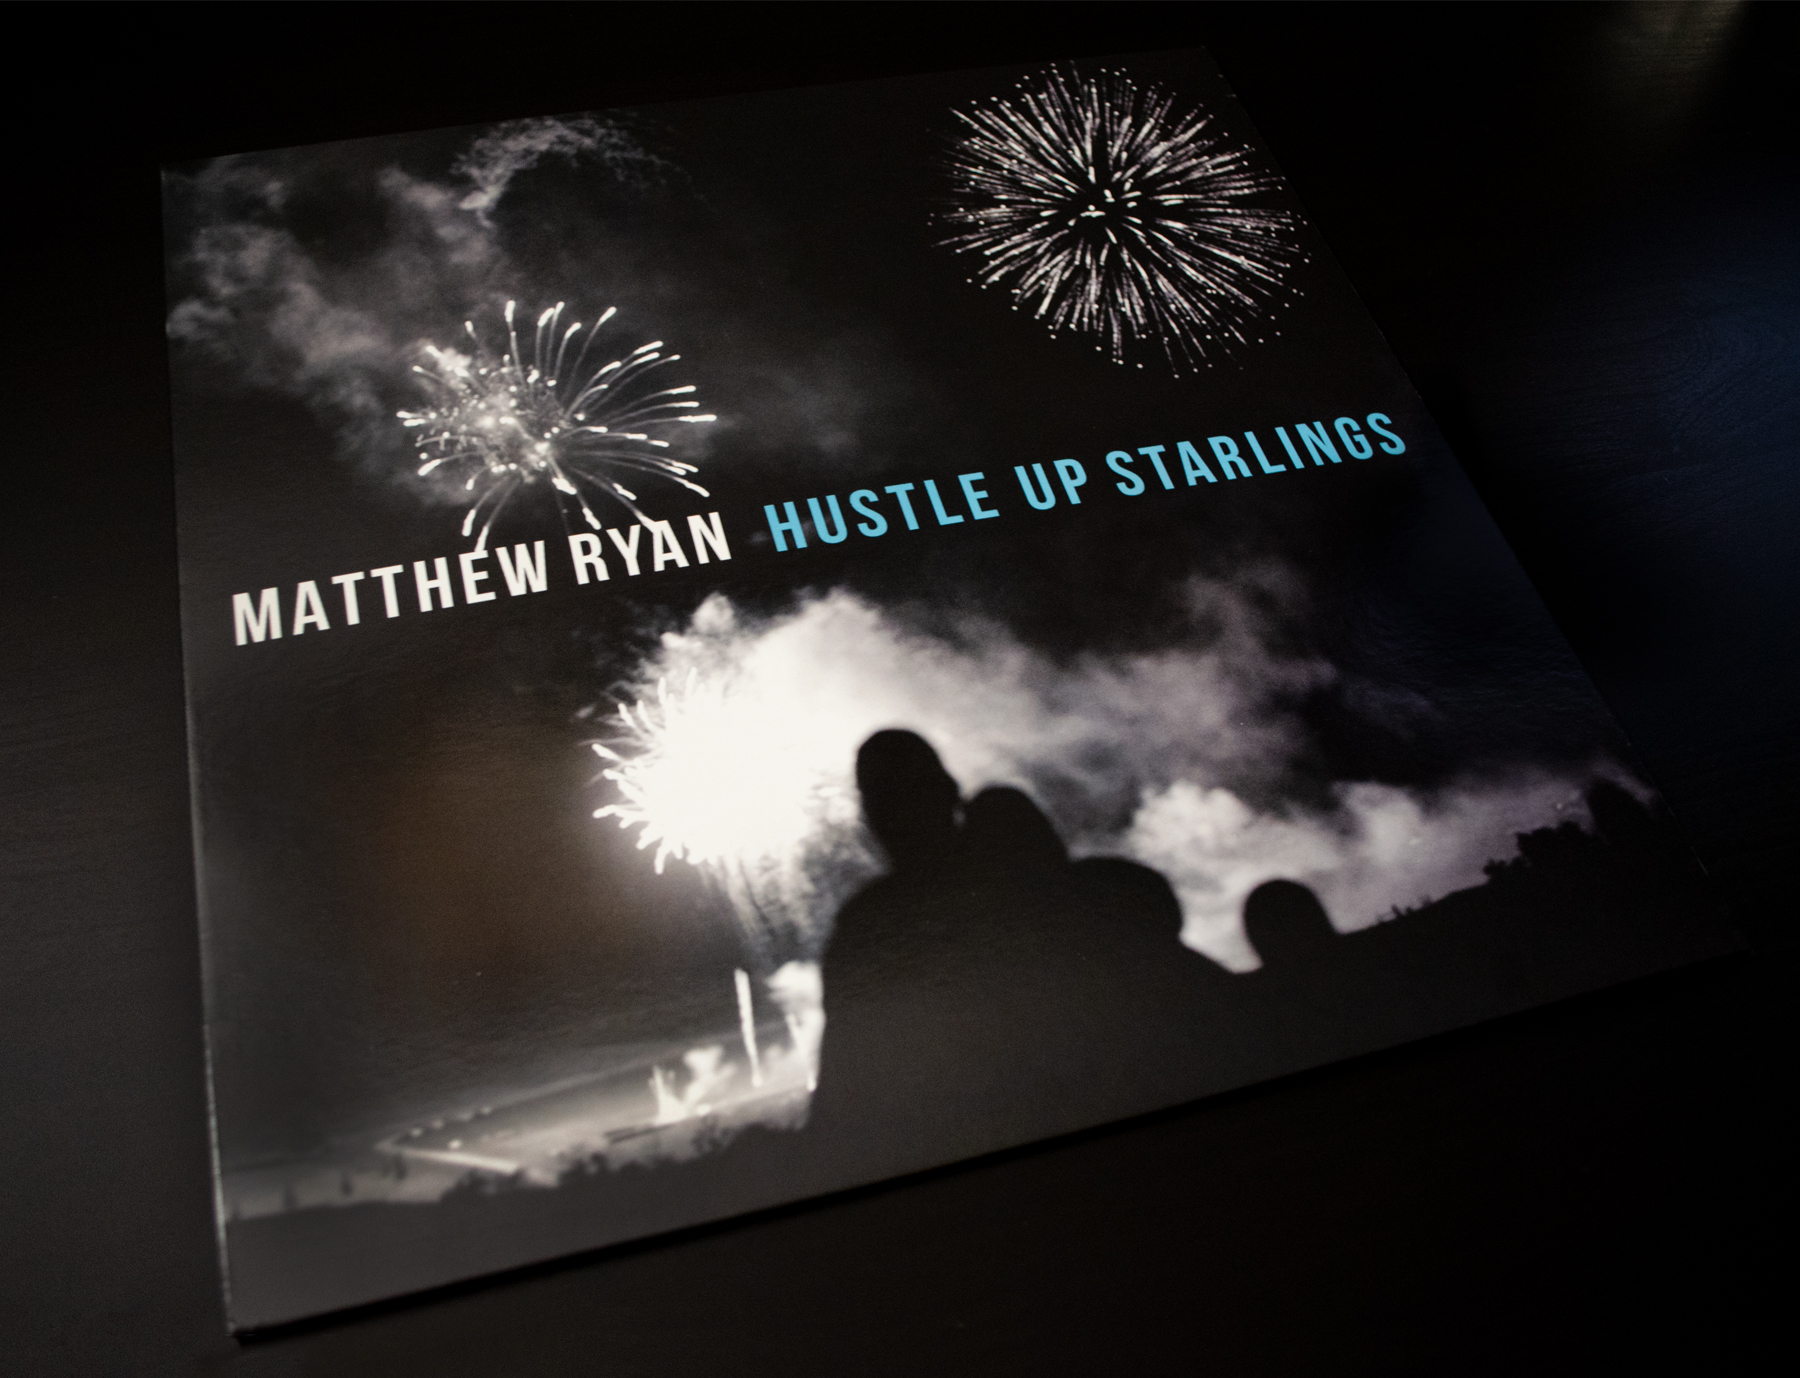 Matthew Ryan Hustle Up Starlings Front Cover Vinyl